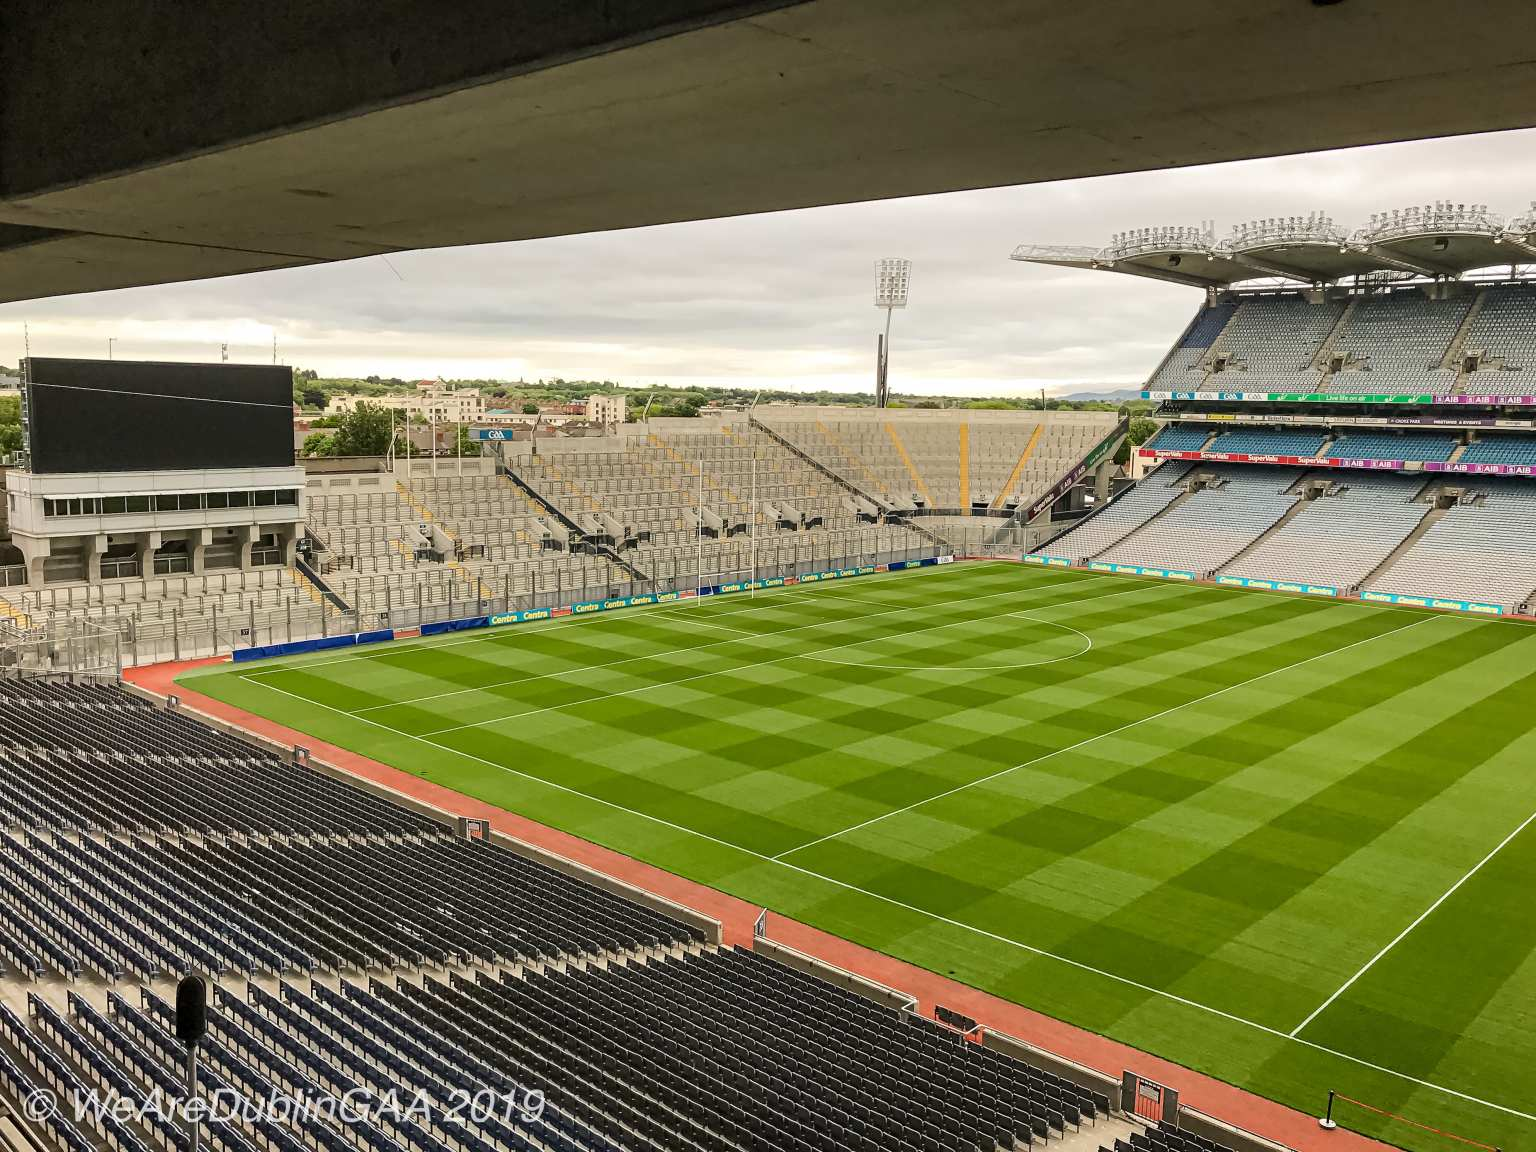 Hill 16 in Croke Park where just 30,000 to 35,000 supporters are expected in GAA headquarters for the Leinster Championship Semi Final double header as Leinster Senior Football championship attendances continue to fall